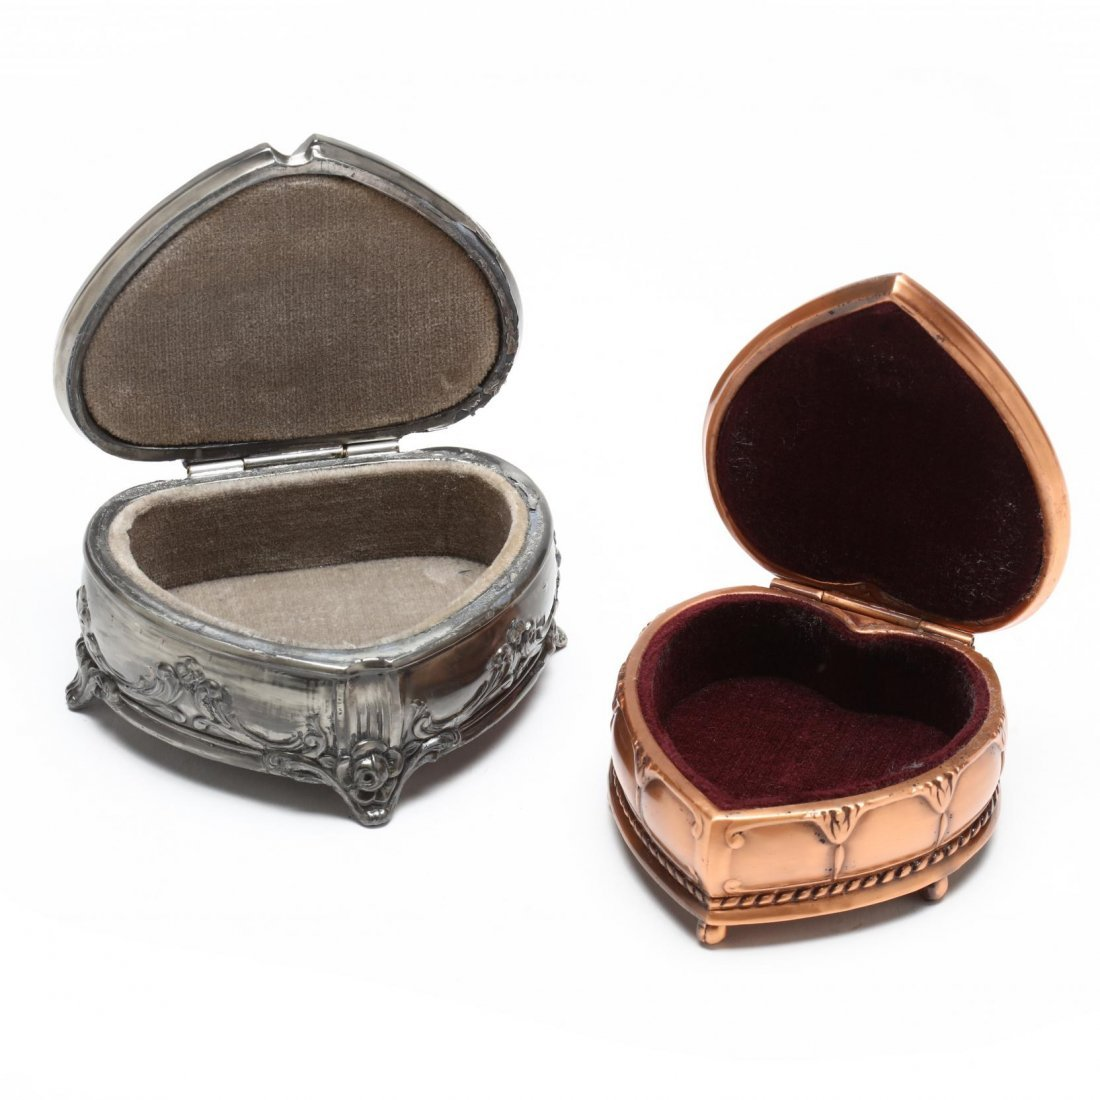 Two Jennings Brothers Heart Shaped Jewelry Boxes - 2